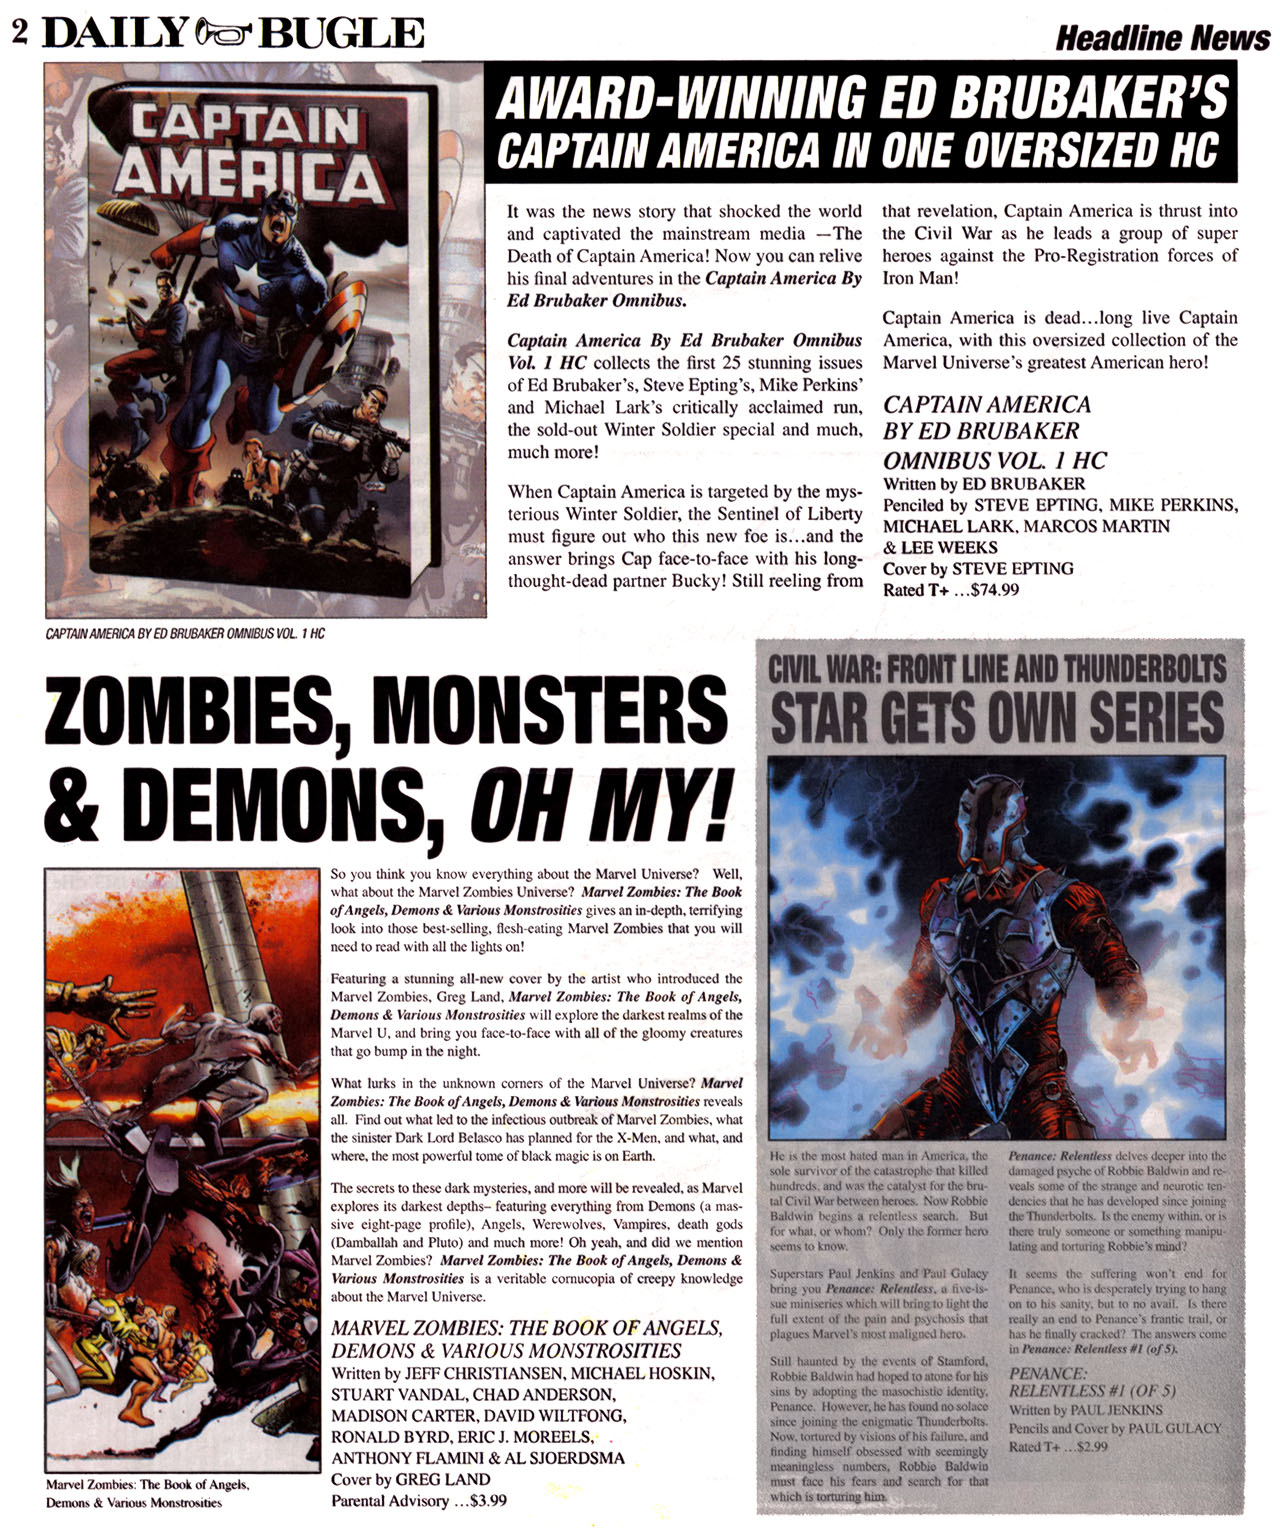 Read online Daily Bugle (2006) comic -  Issue #12 - 3